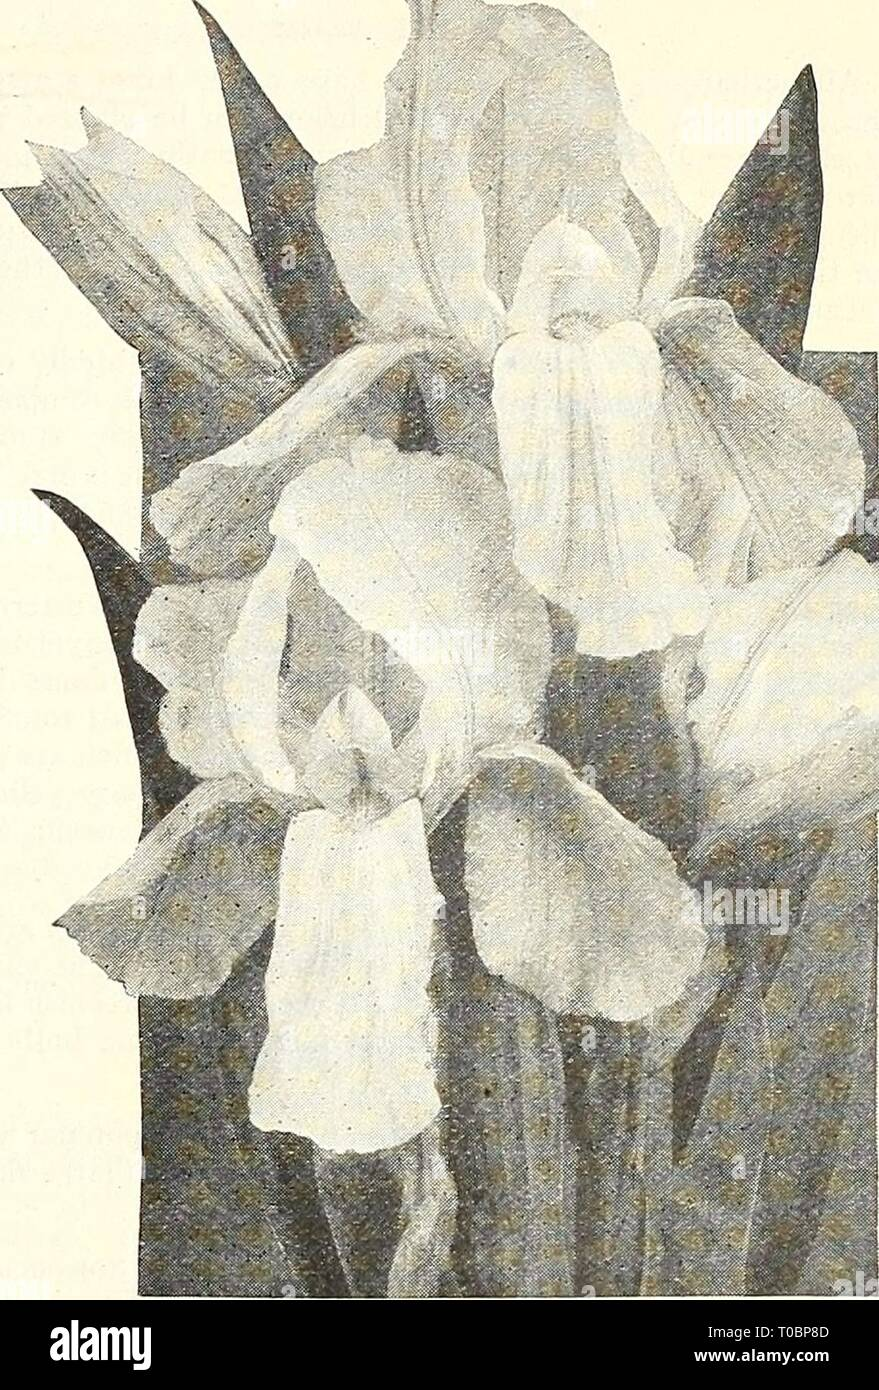 Dreer's garden book 1928 (1928) Dreer's garden book 1928 dreersgardenbook1928henr Year: 1928  BMmmmtoMmkamkHtmmm 185 General Collection of Iris Germanica Blue Boy. Standards and falls lavender blue. Bridesmaid. Standards pale lavender; falls white, reticulated lavender. Candelabra. Standards lavender suffused lilac, falls dark purple with white reticulation. Cherubim. Standard pale lilac, falls lilac veined with purple. Florentina Alba. Very free-flowering white. Foster's Yellow. Standards and falls creamy yellow. Her Majesty. Standards and falls bright mauve pink. Honorabilis. Standards golde - Stock Image